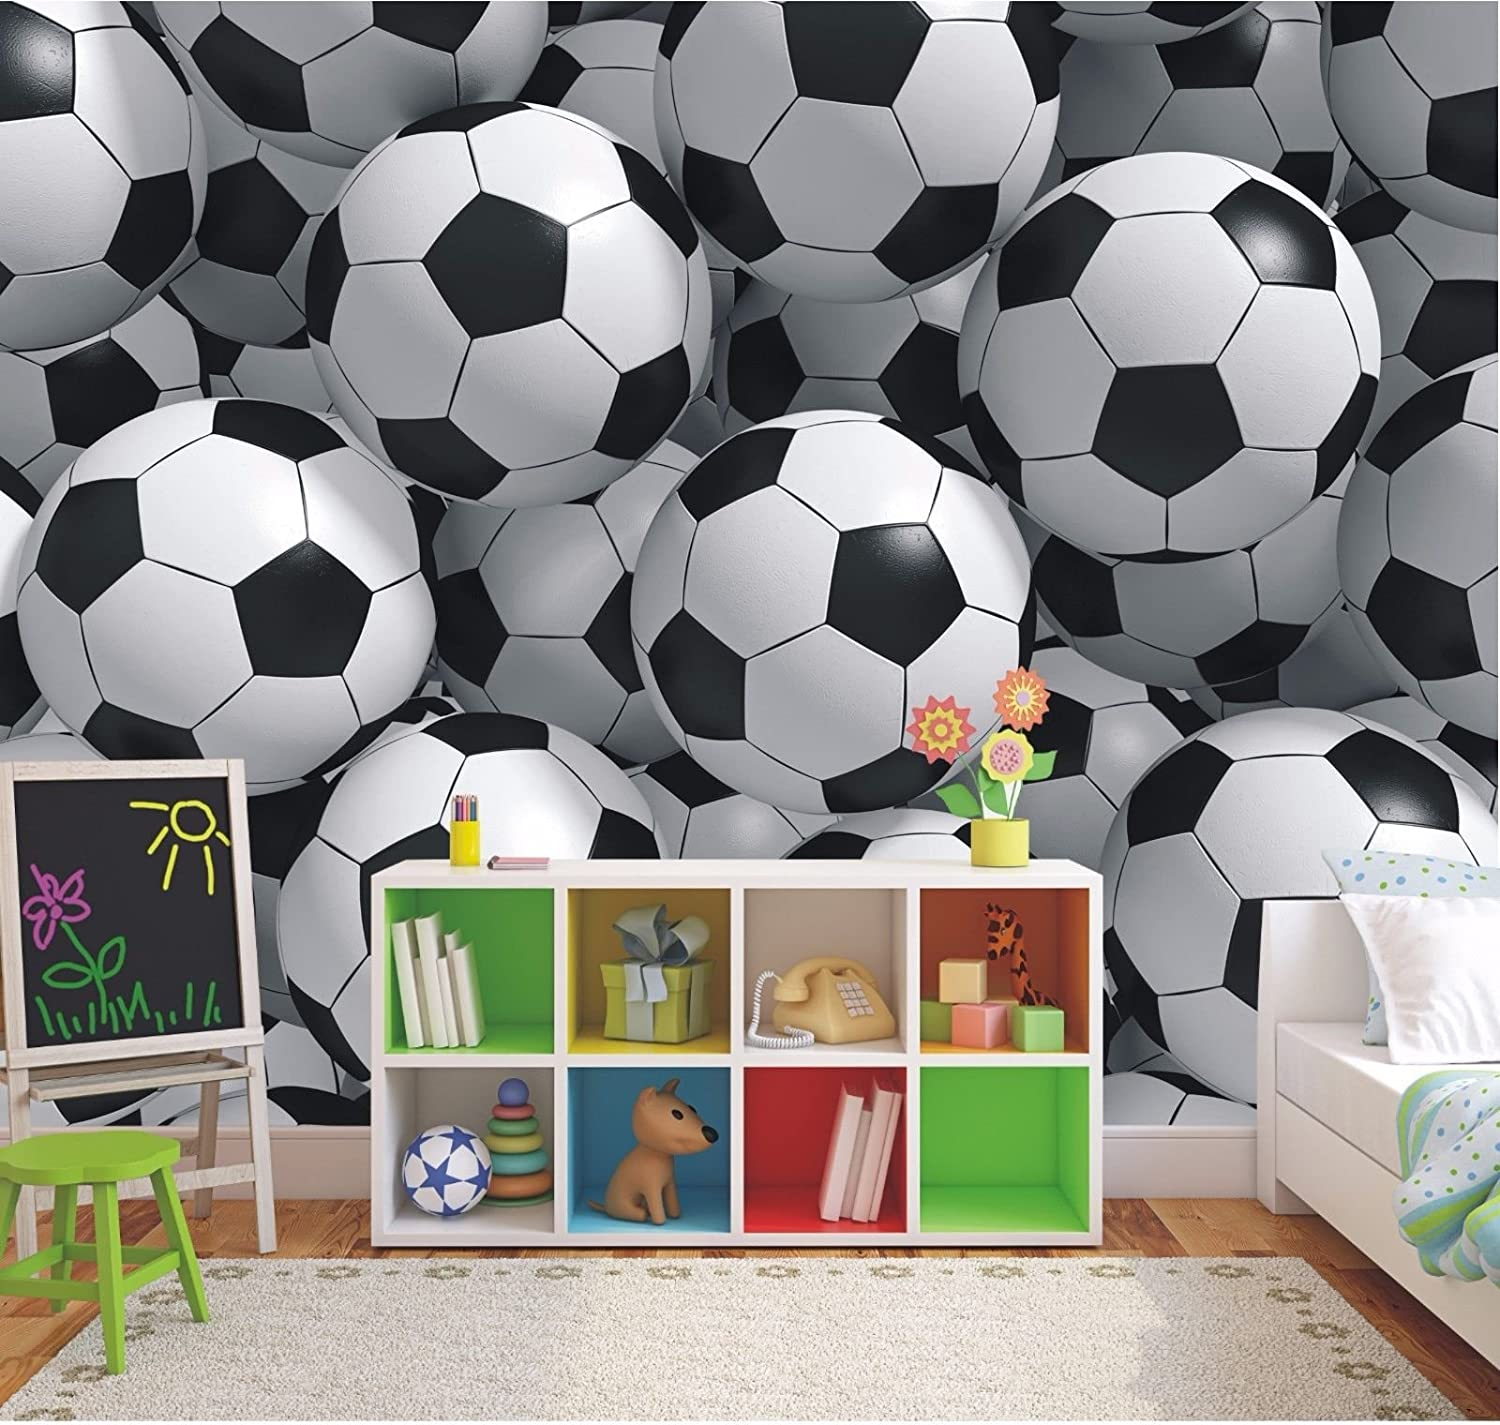 3d Footballs Wallpaper Mural Boys Bedroom Soccer Photo Wall Mural 2xl Amazon Co Uk Kitchen Home